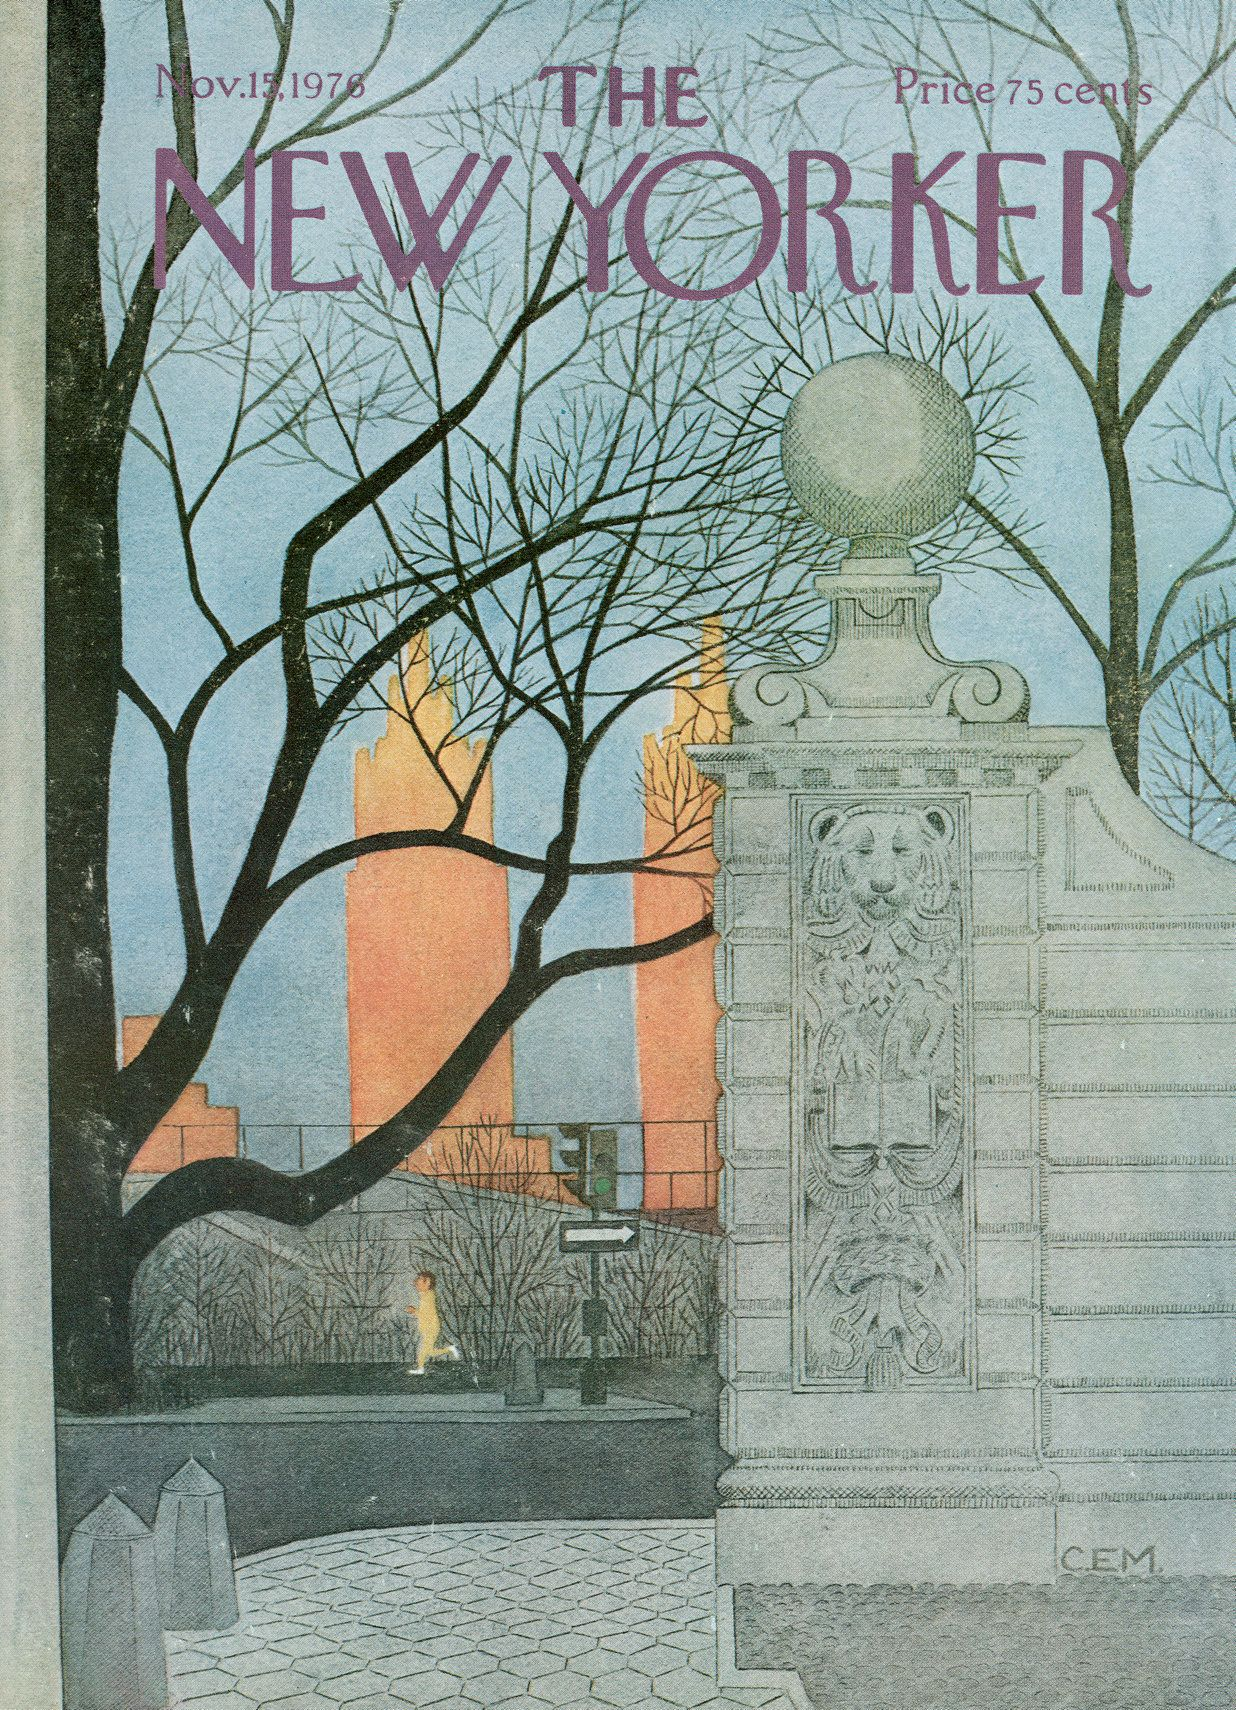 52 the new yorker 1976 ideas the new